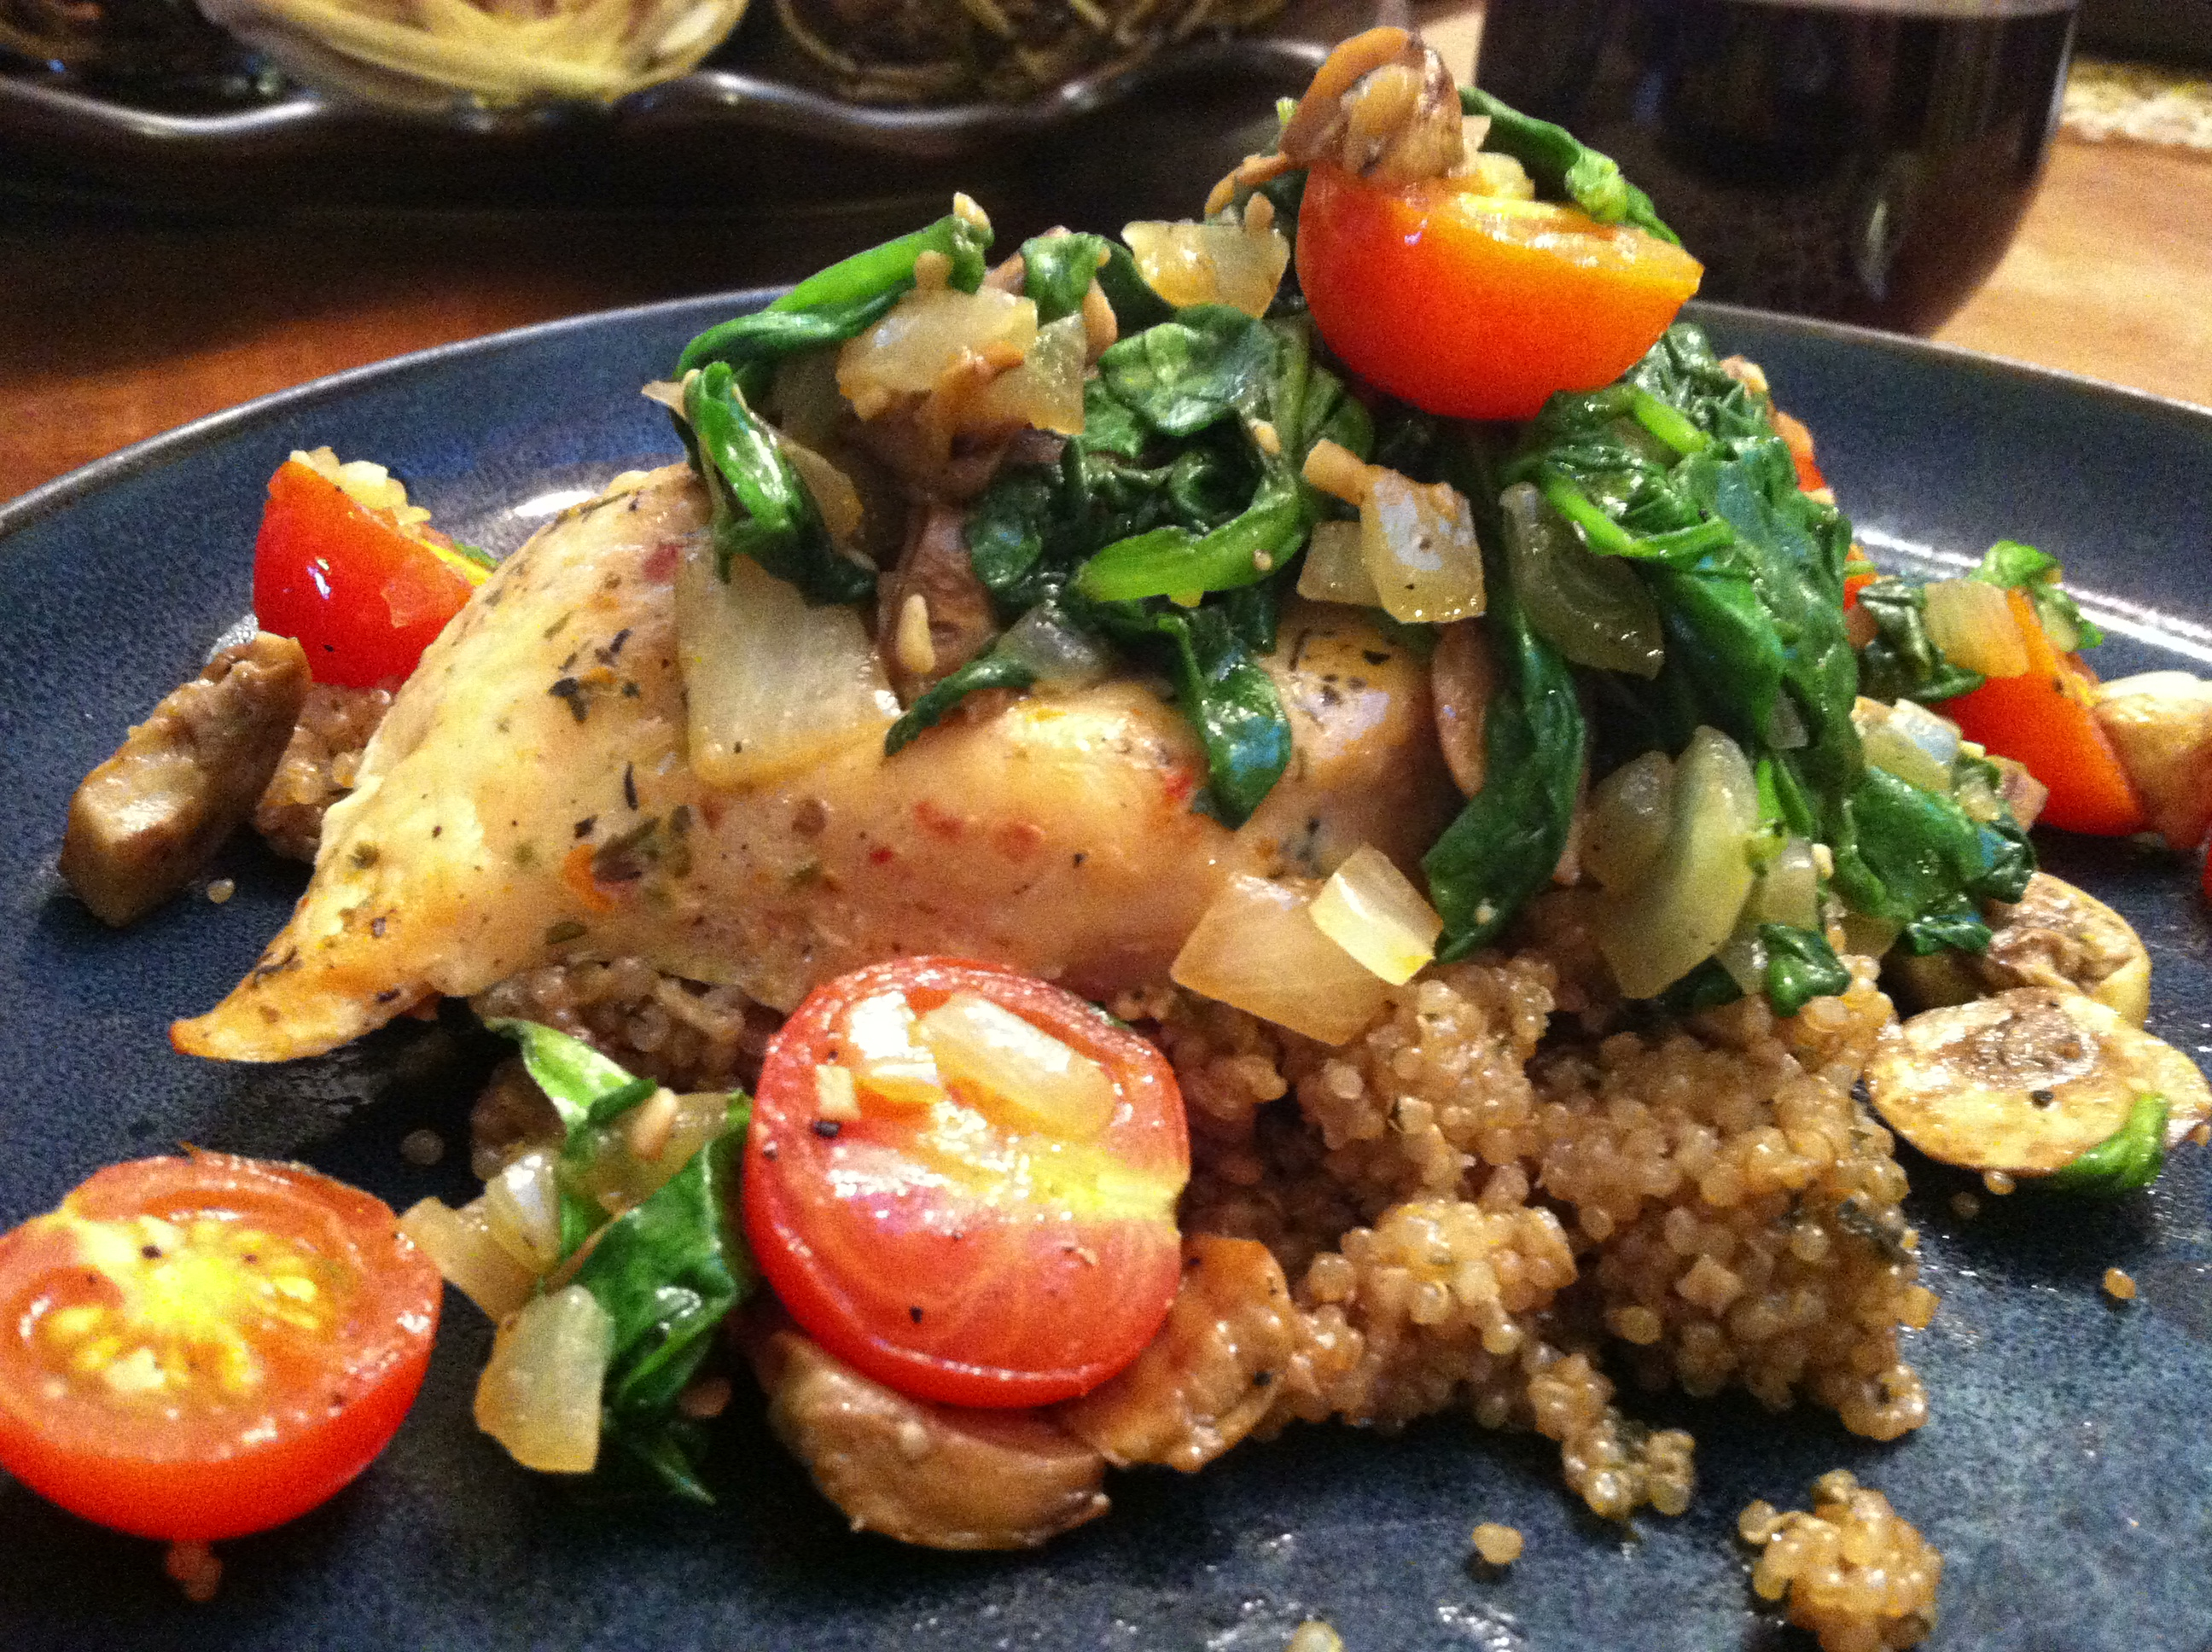 Baked chicken and quinoa